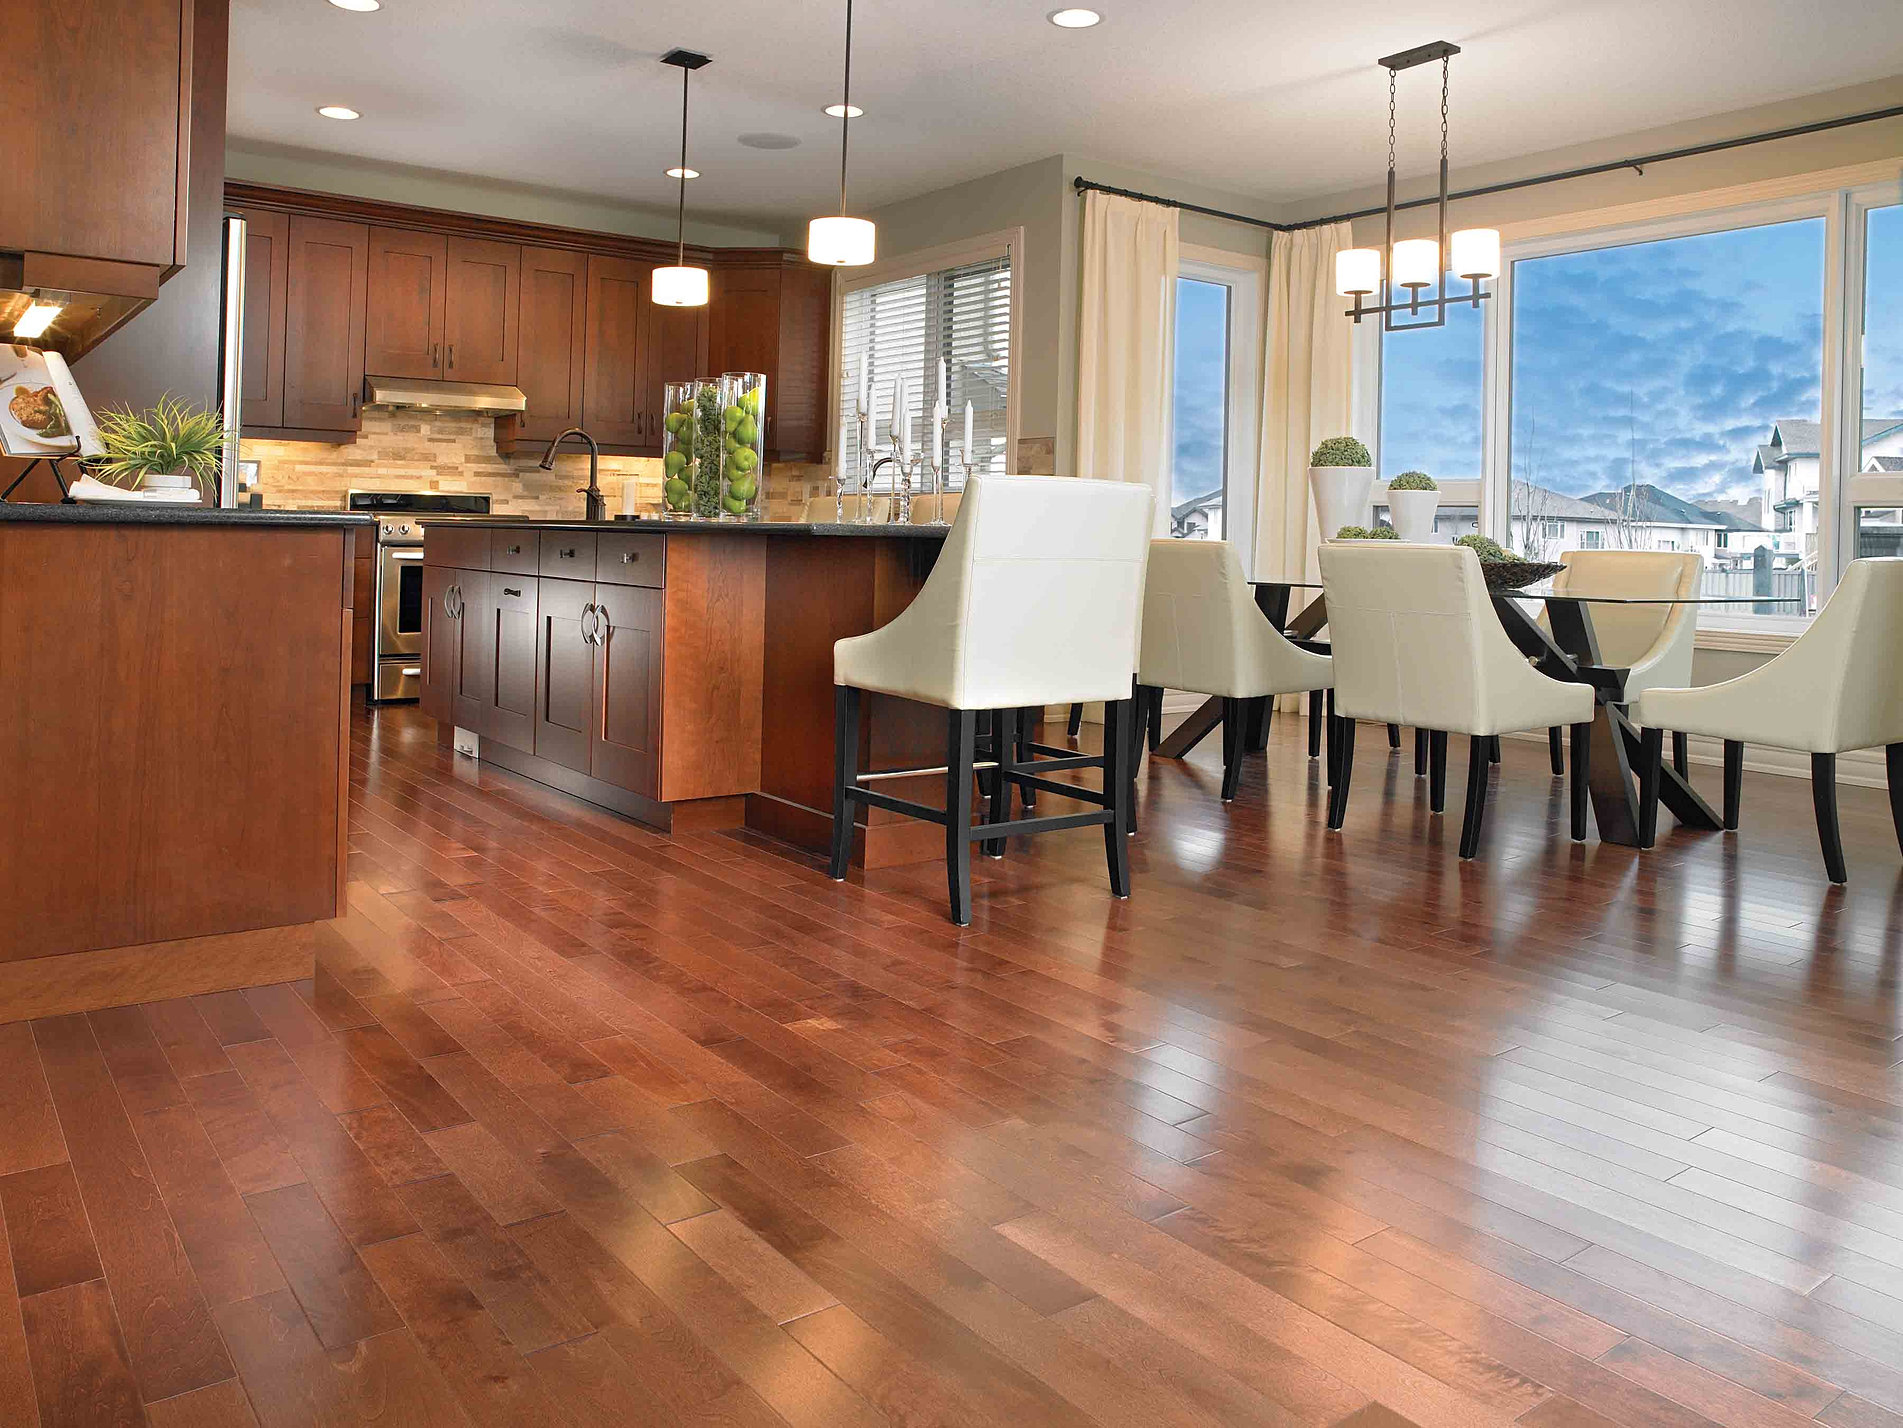 Kitchen Tile Laminate Flooring Calvetta Brothers Floor Show 216 220 6473